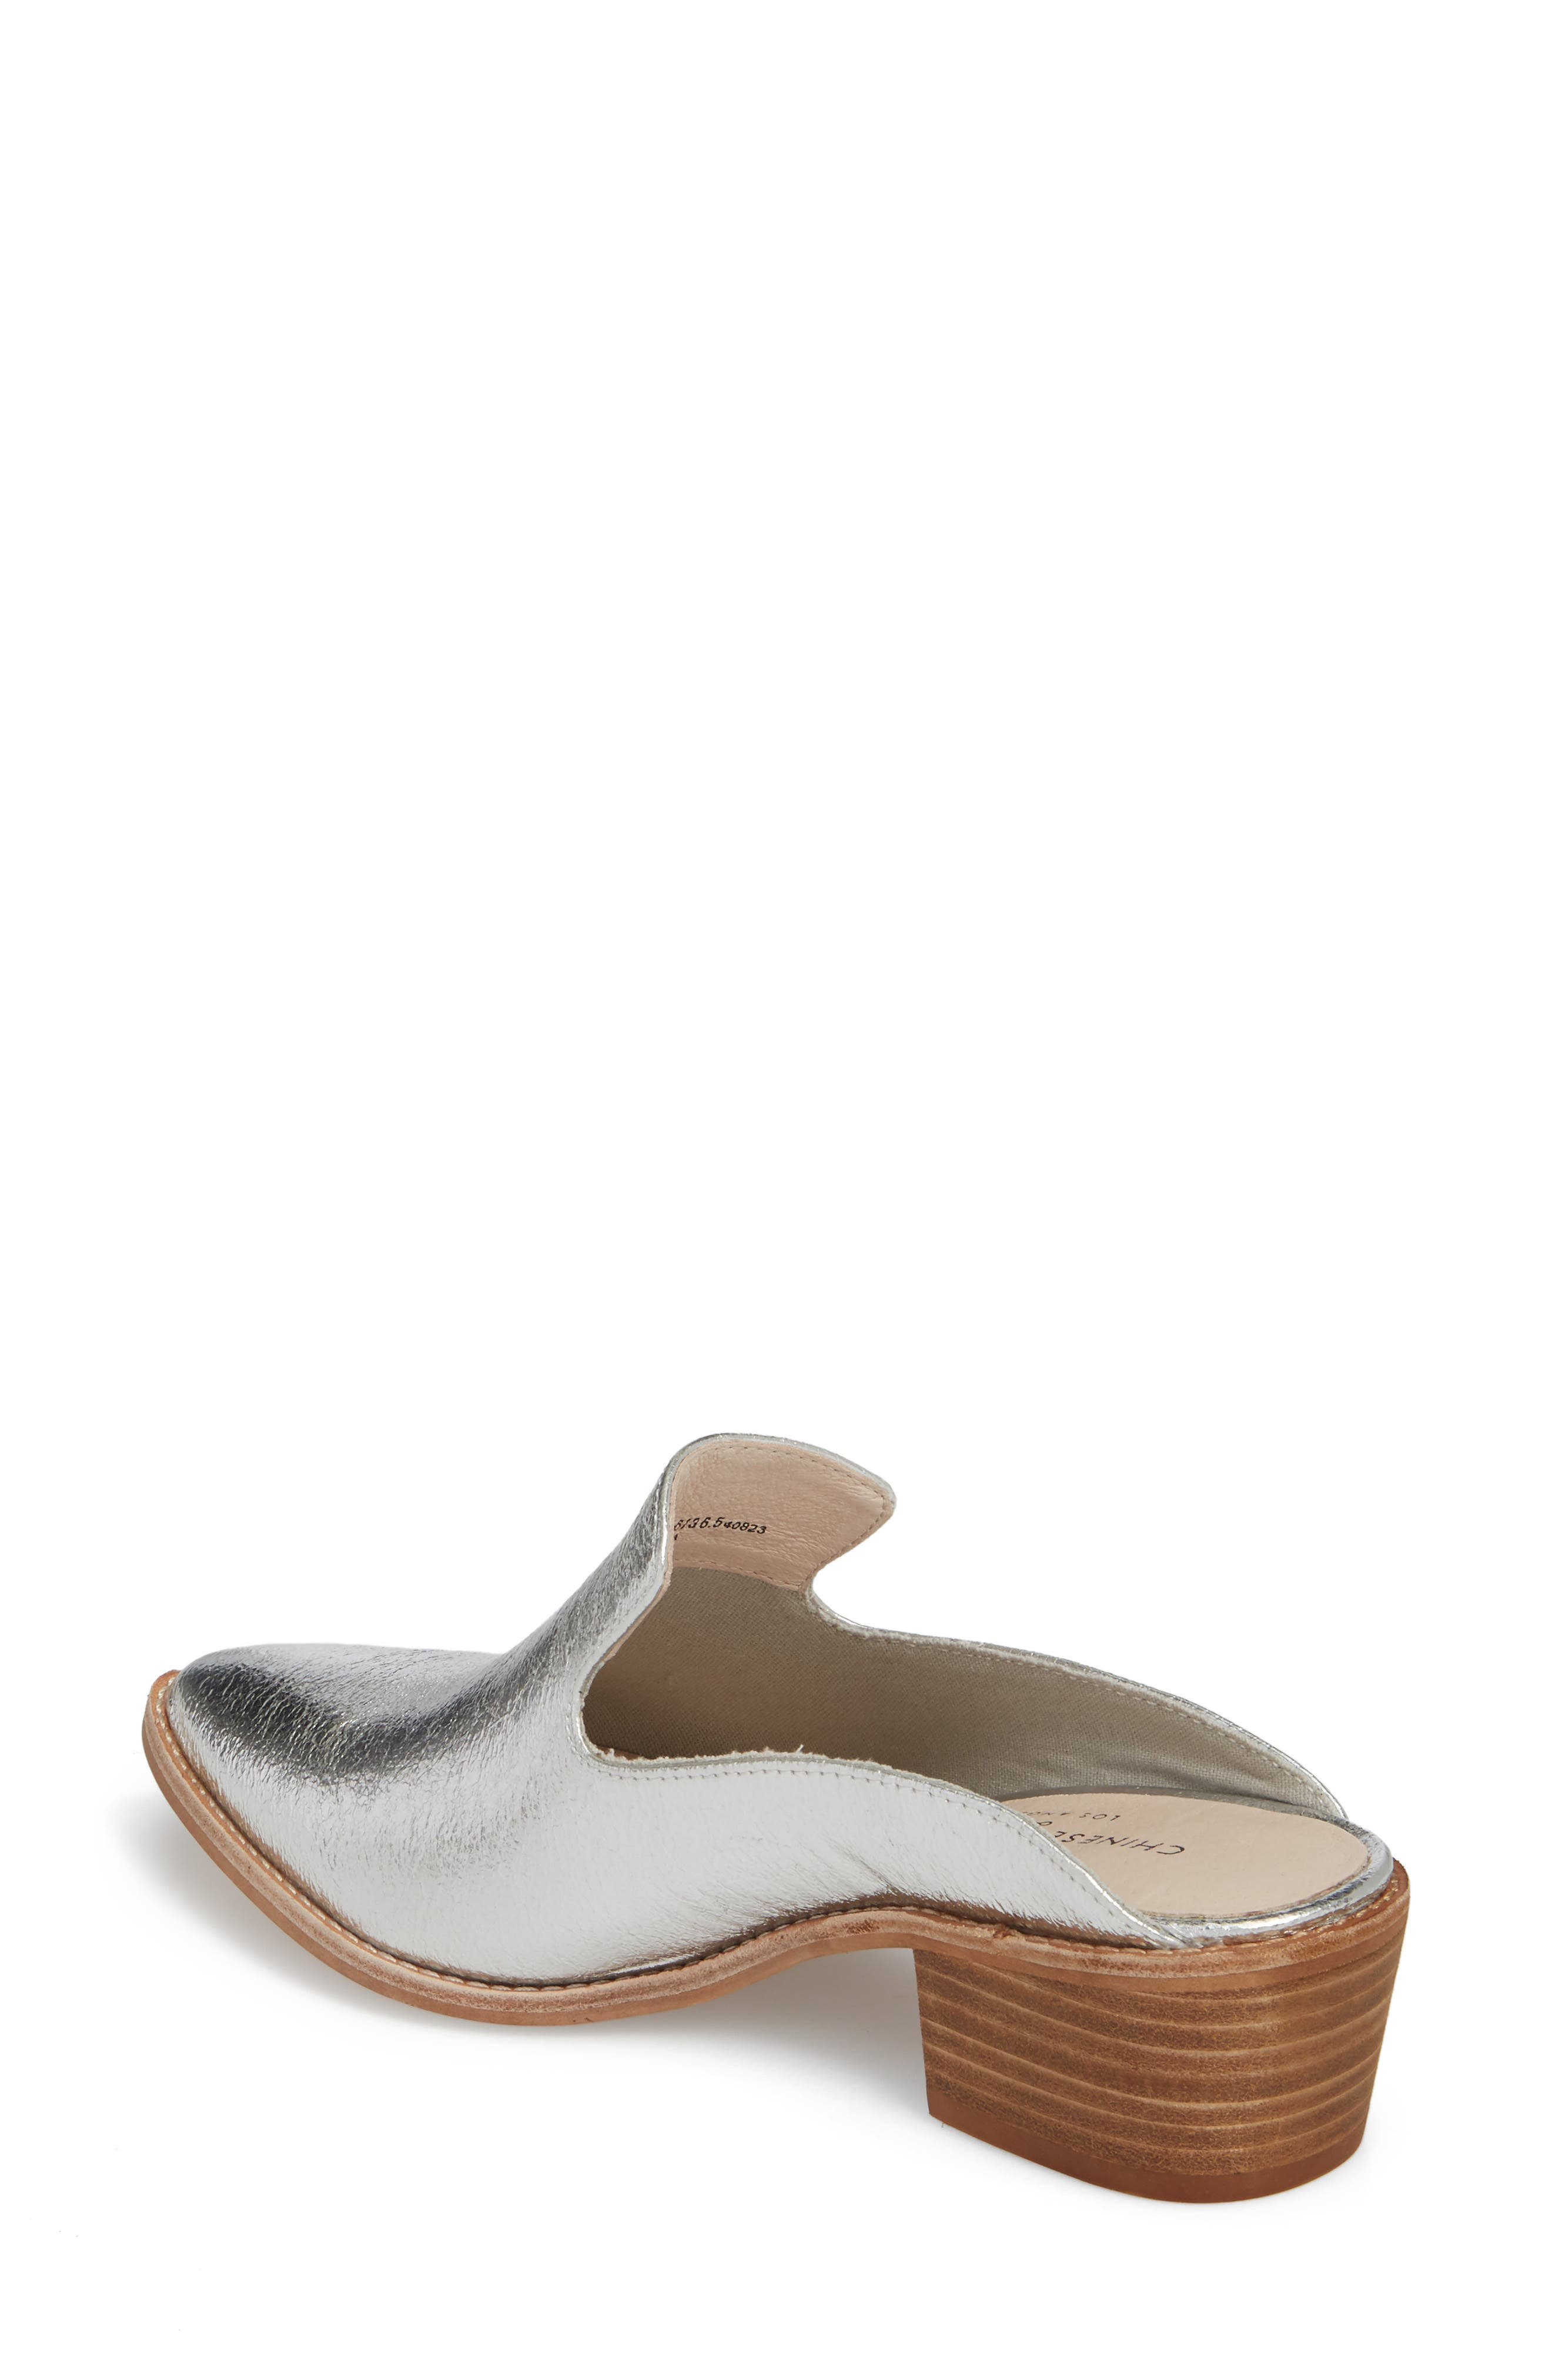 Marnie Loafer Mule,                             Alternate thumbnail 2, color,                             Silver